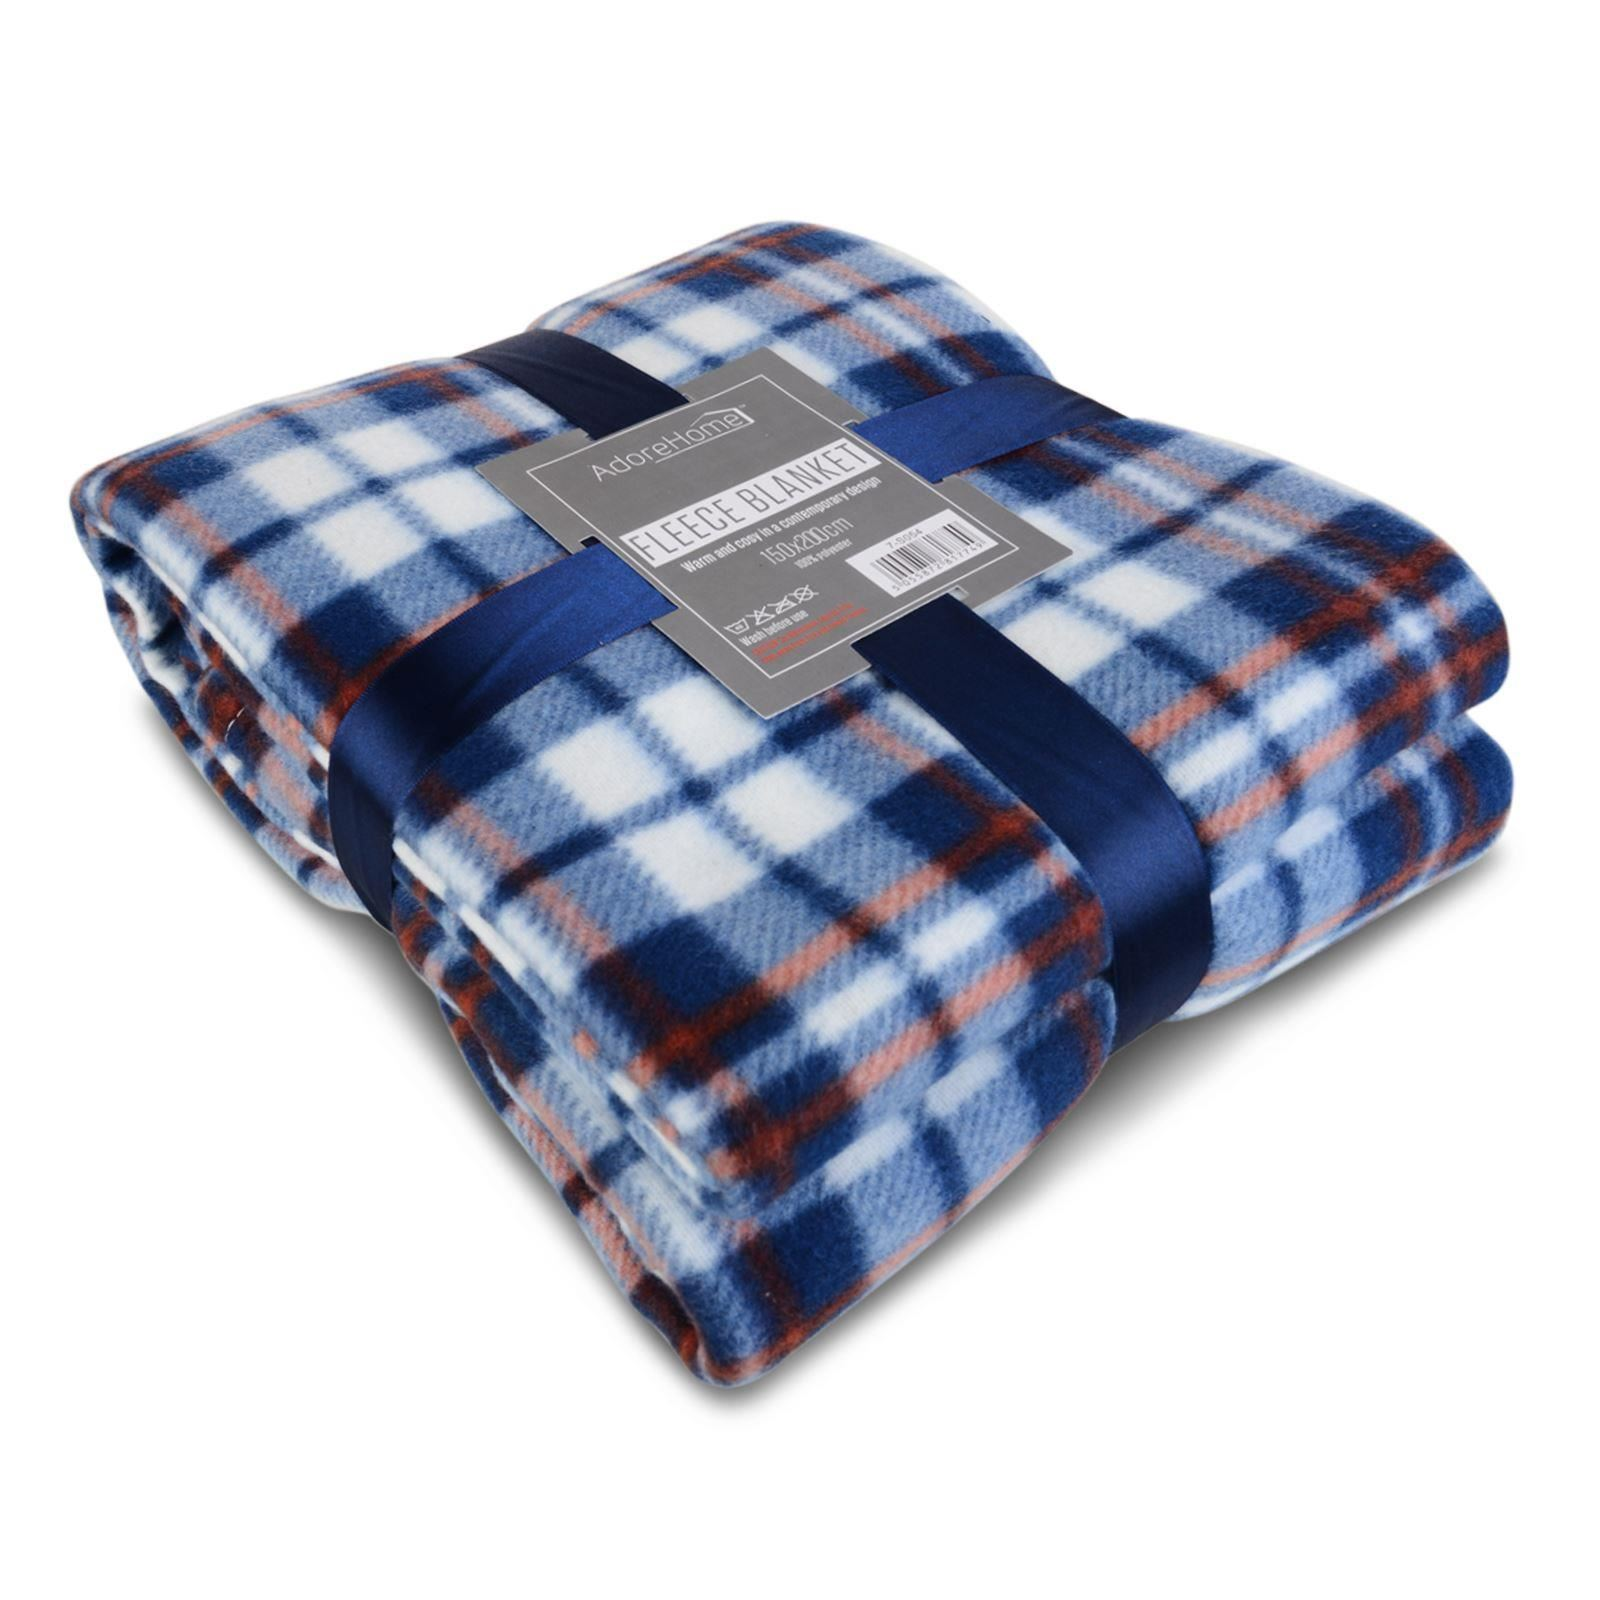 Soft Amp Warm Single Printed Fleece Blankets For Sofa Bed